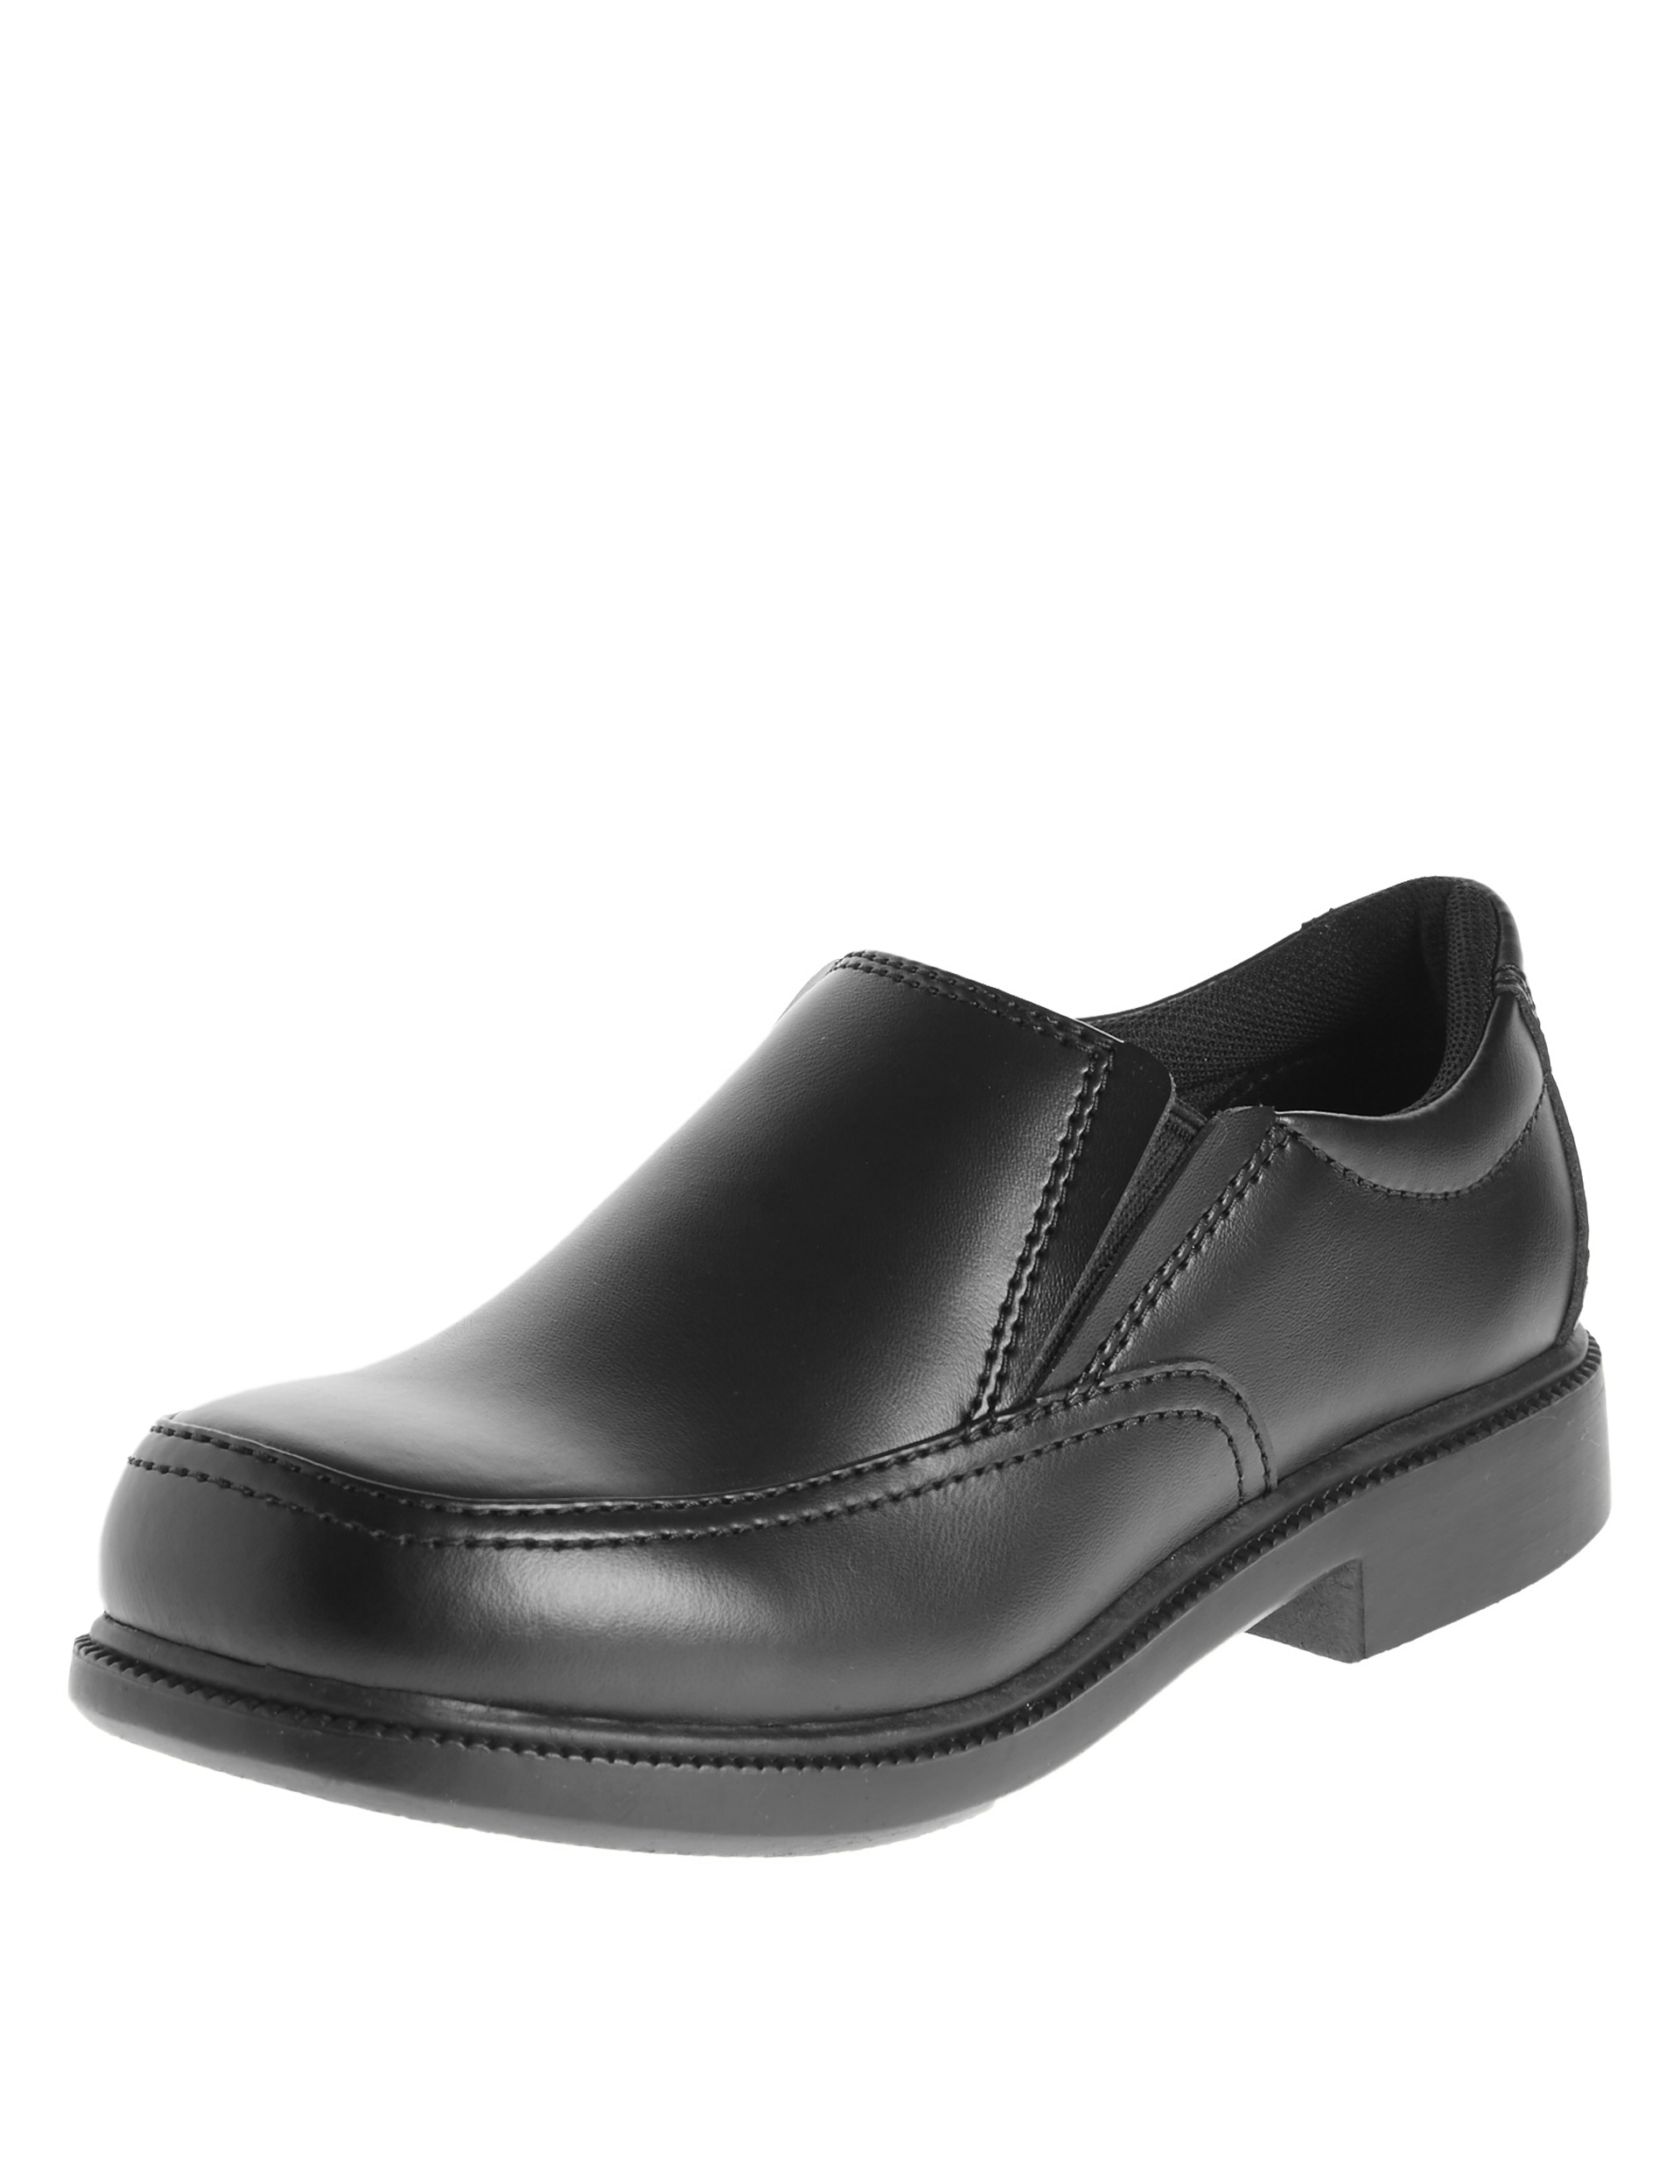 ECCO Shoes UK Back to School Collection – shop the range of kids school shoes with free UK delivery.